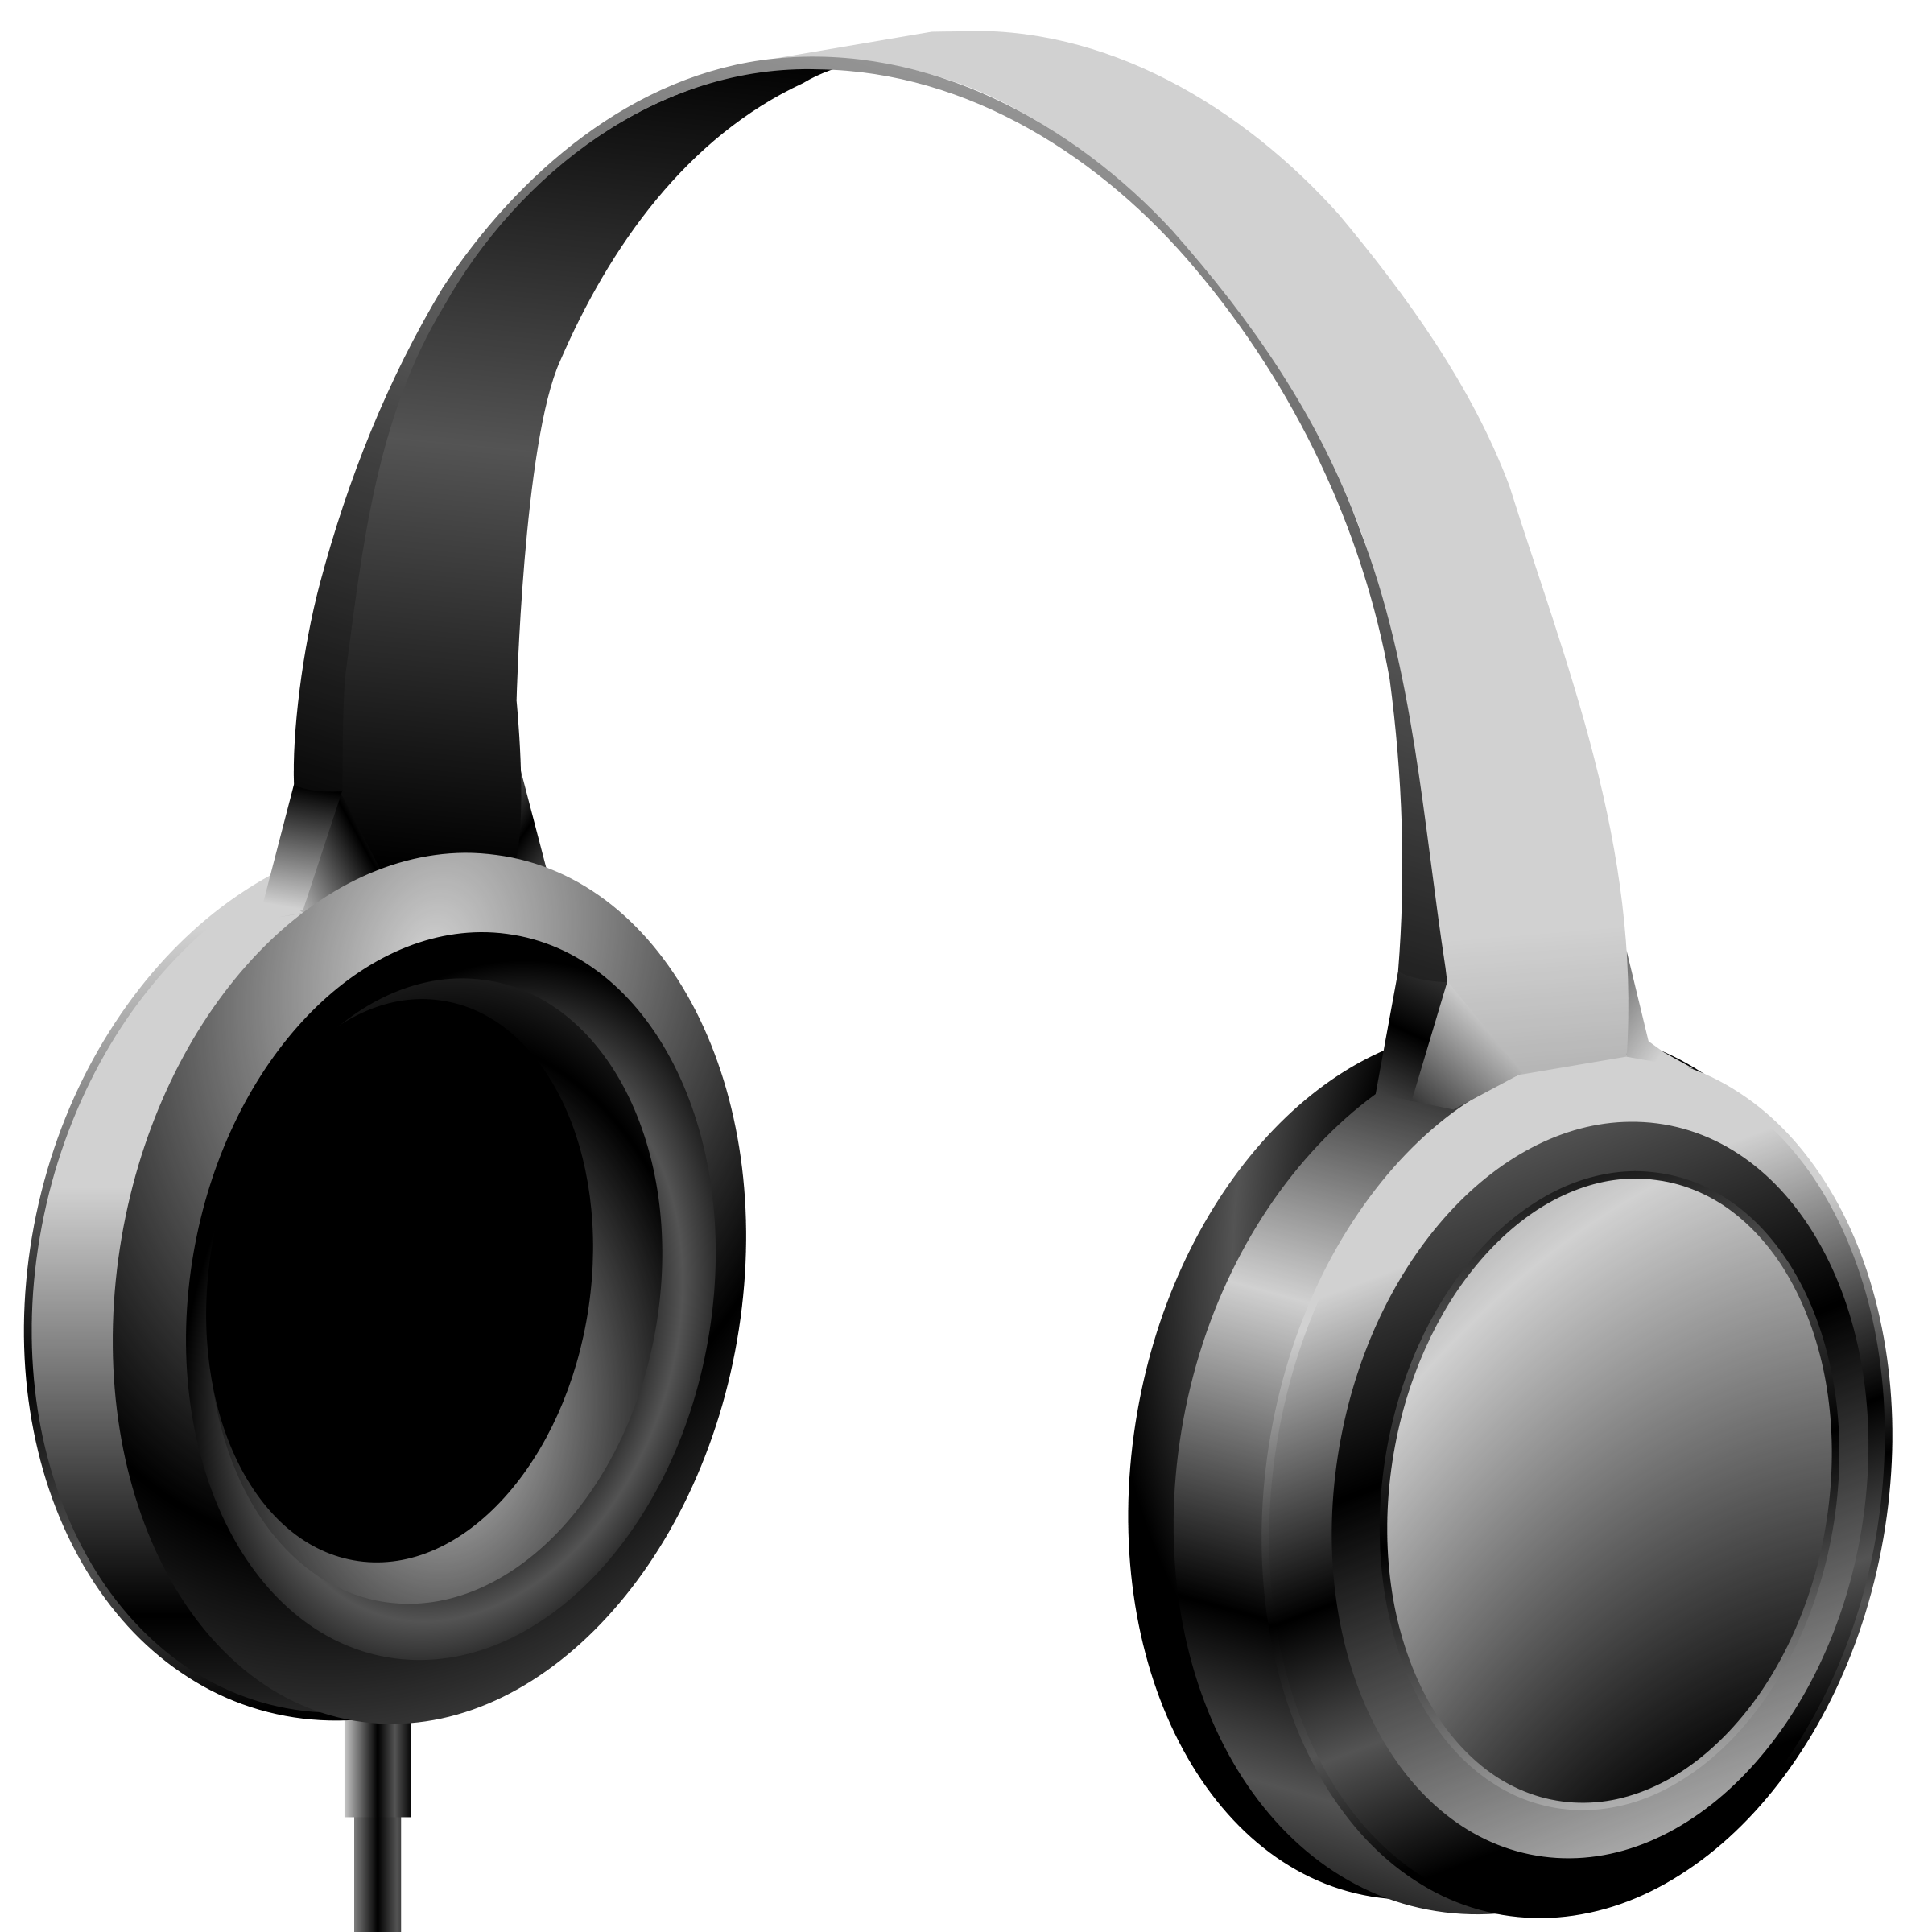 Headphones PNG images free download